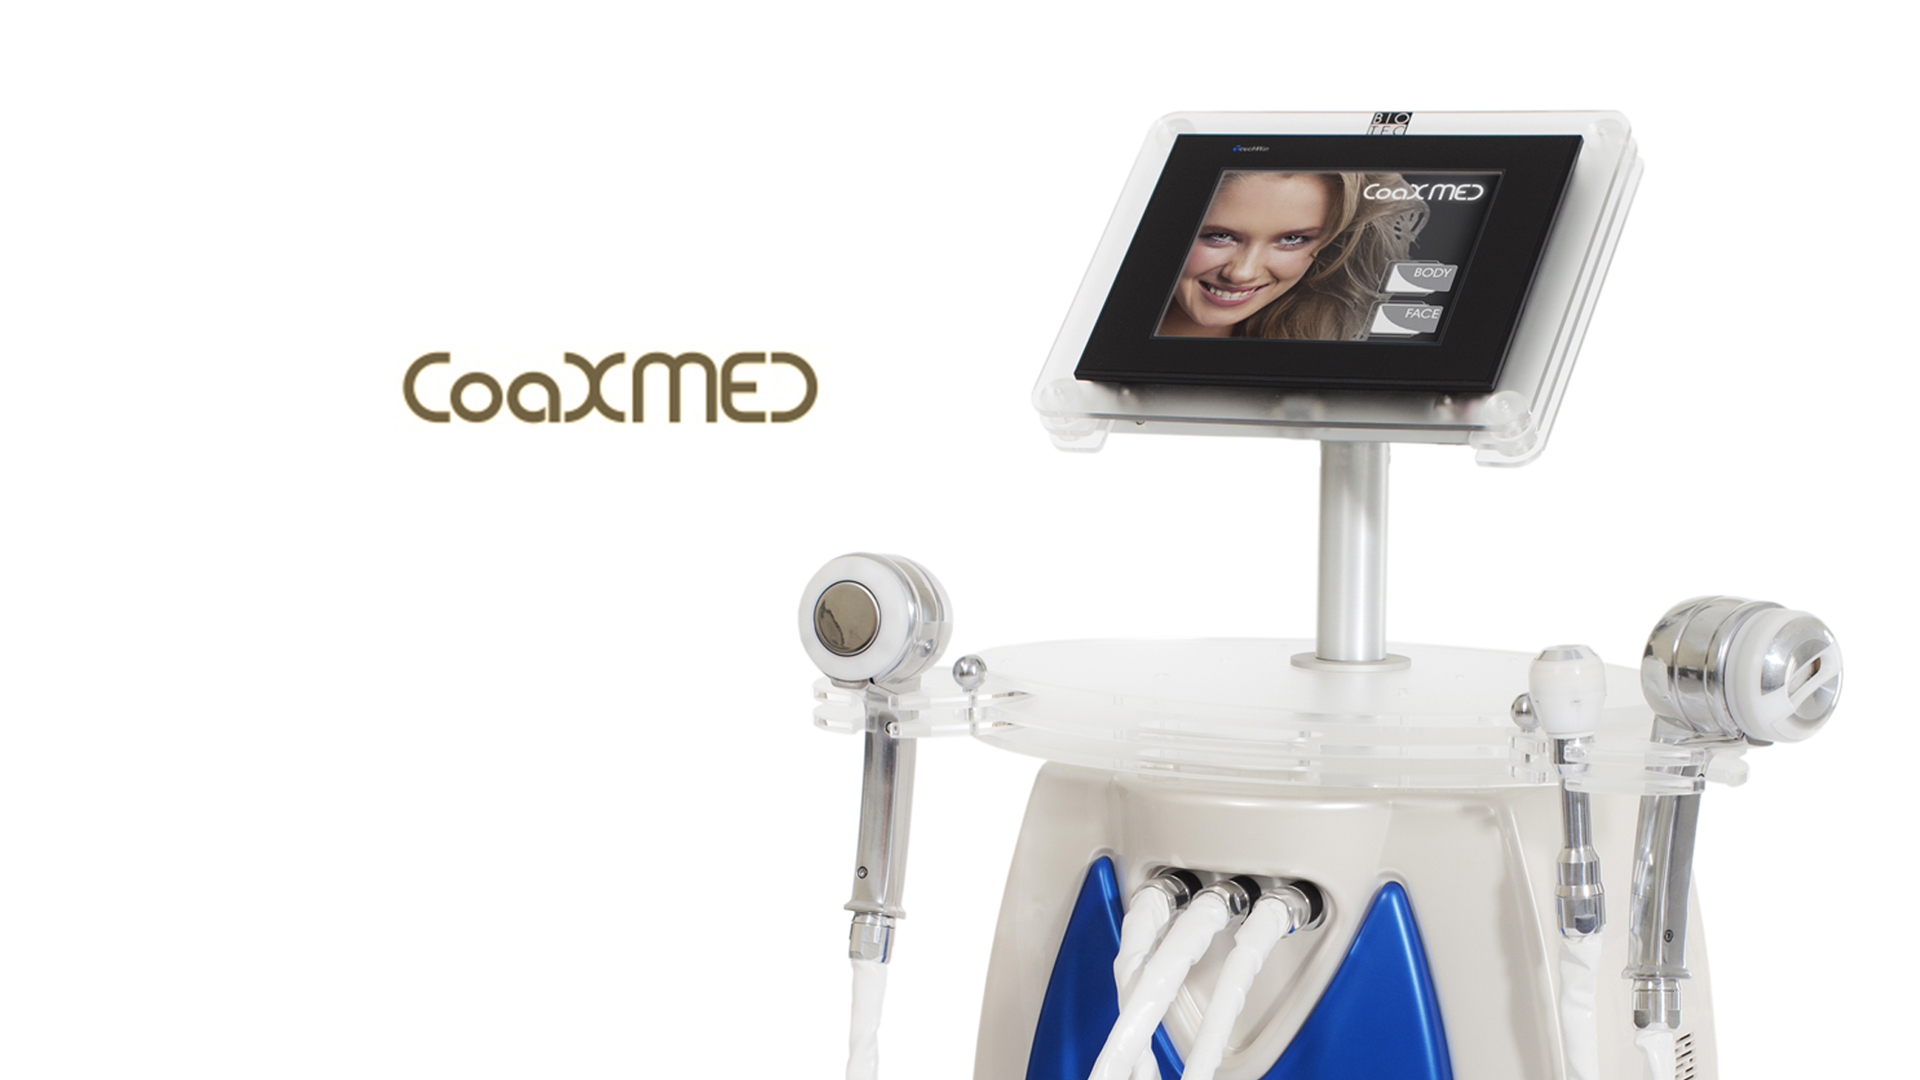 Coaxmed